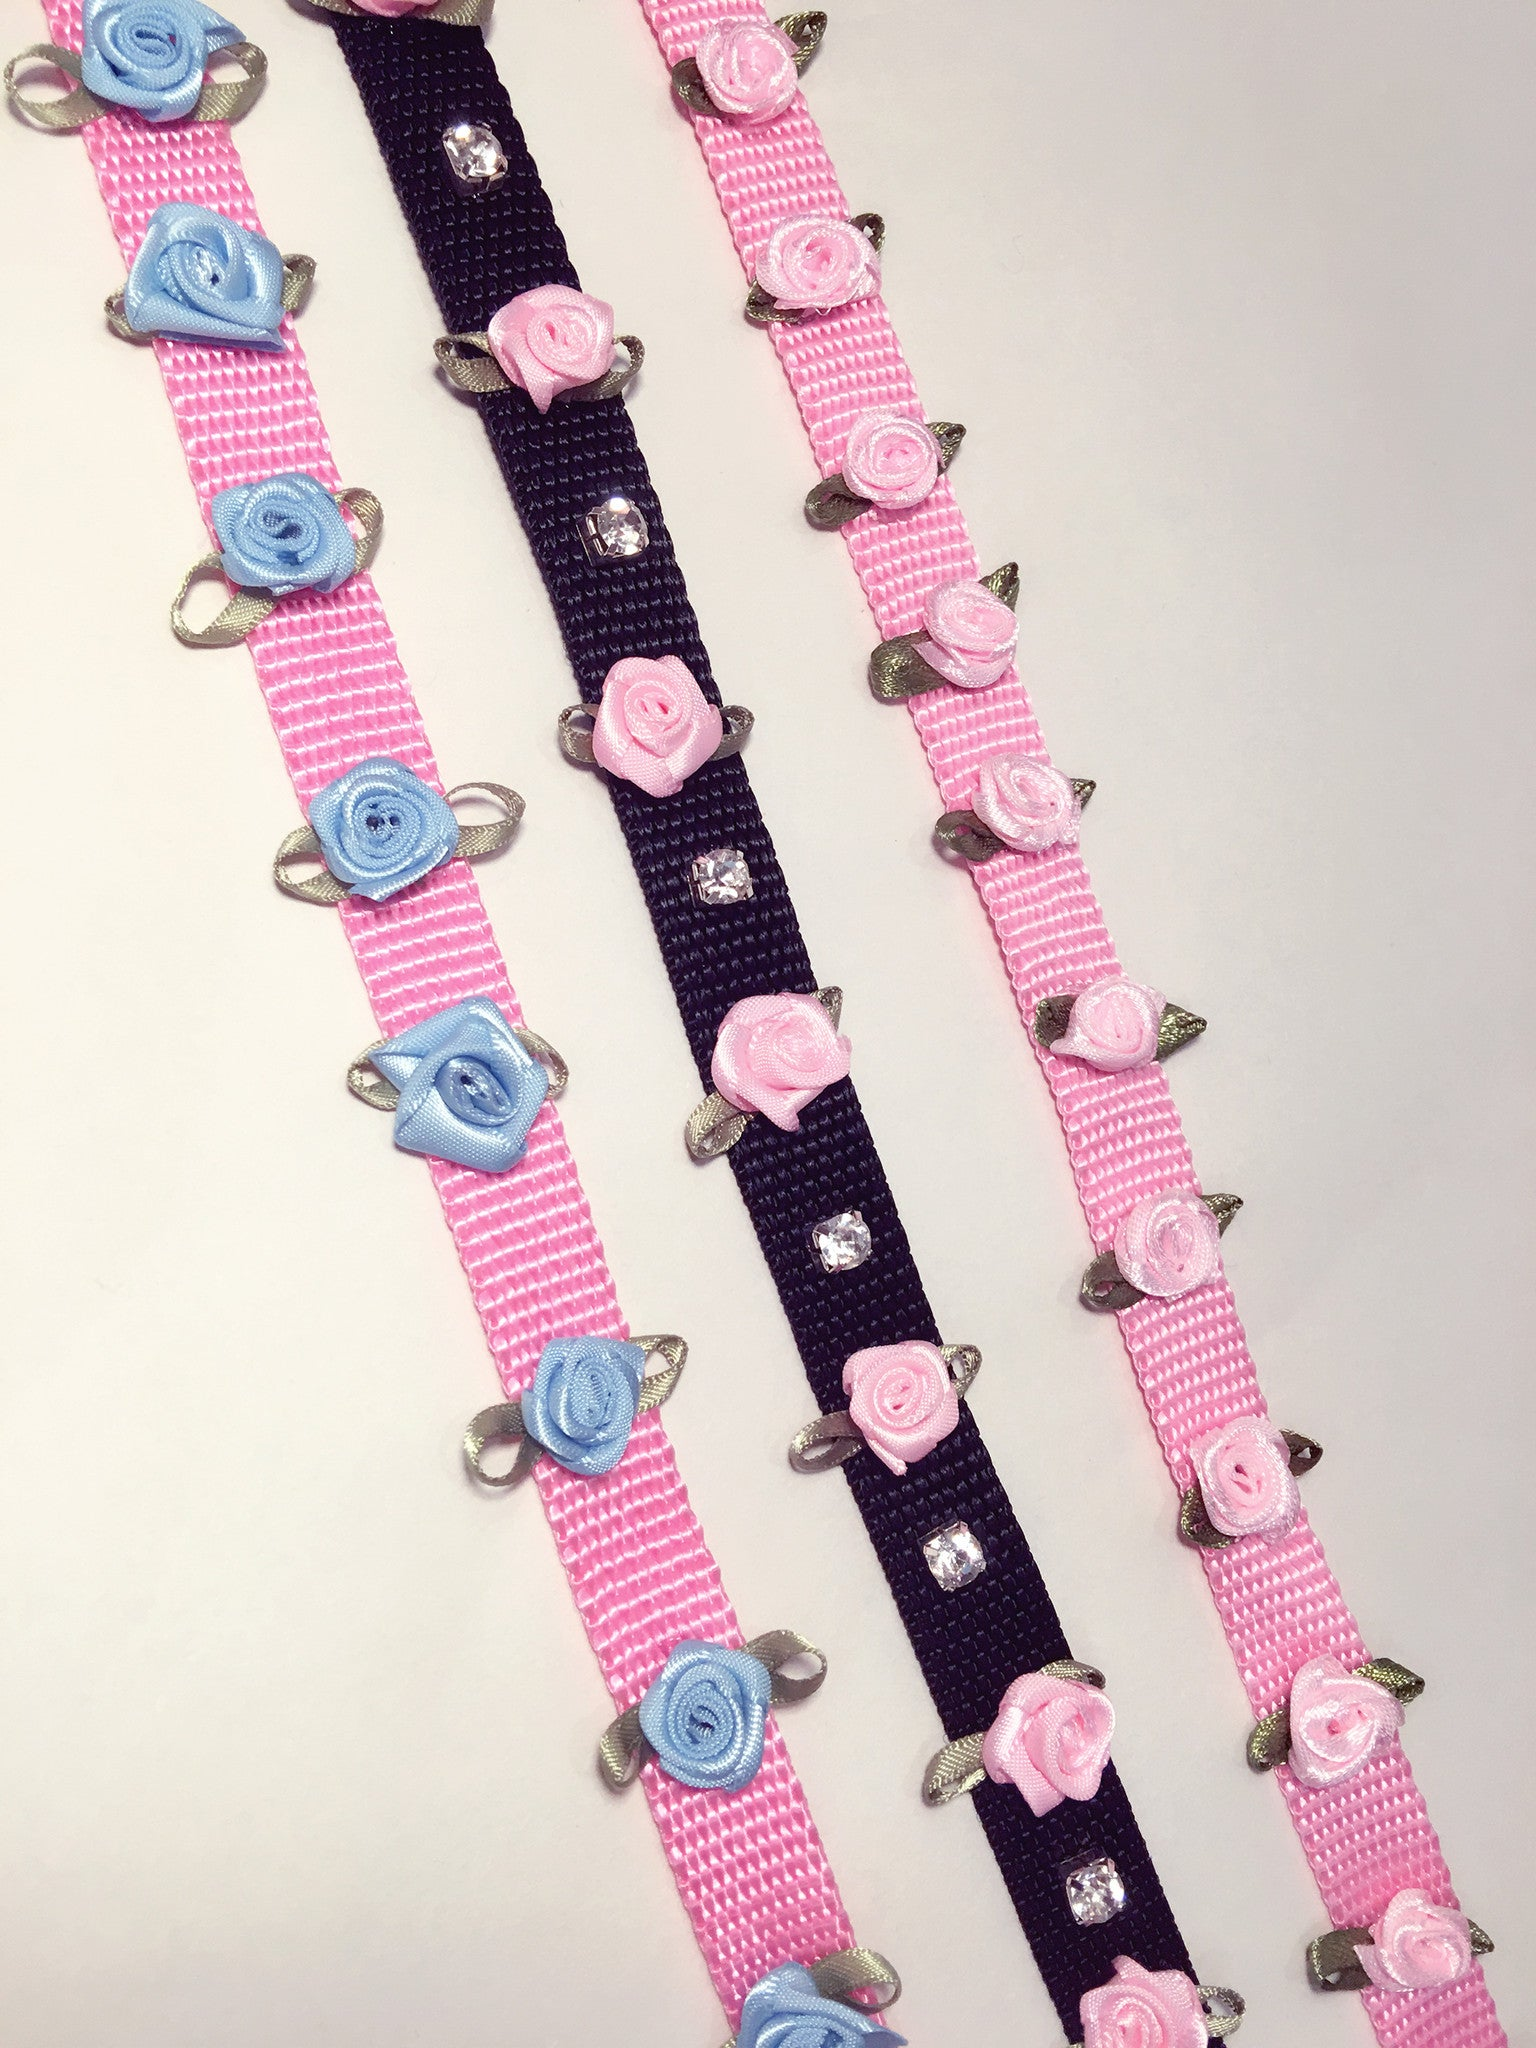 Pink and Blue rose kawaii leash for BDSM play fetish kitten petplay style fashion accessories available at BABY VOODOO  - Shop now at BABYVOODOO.COM ♥